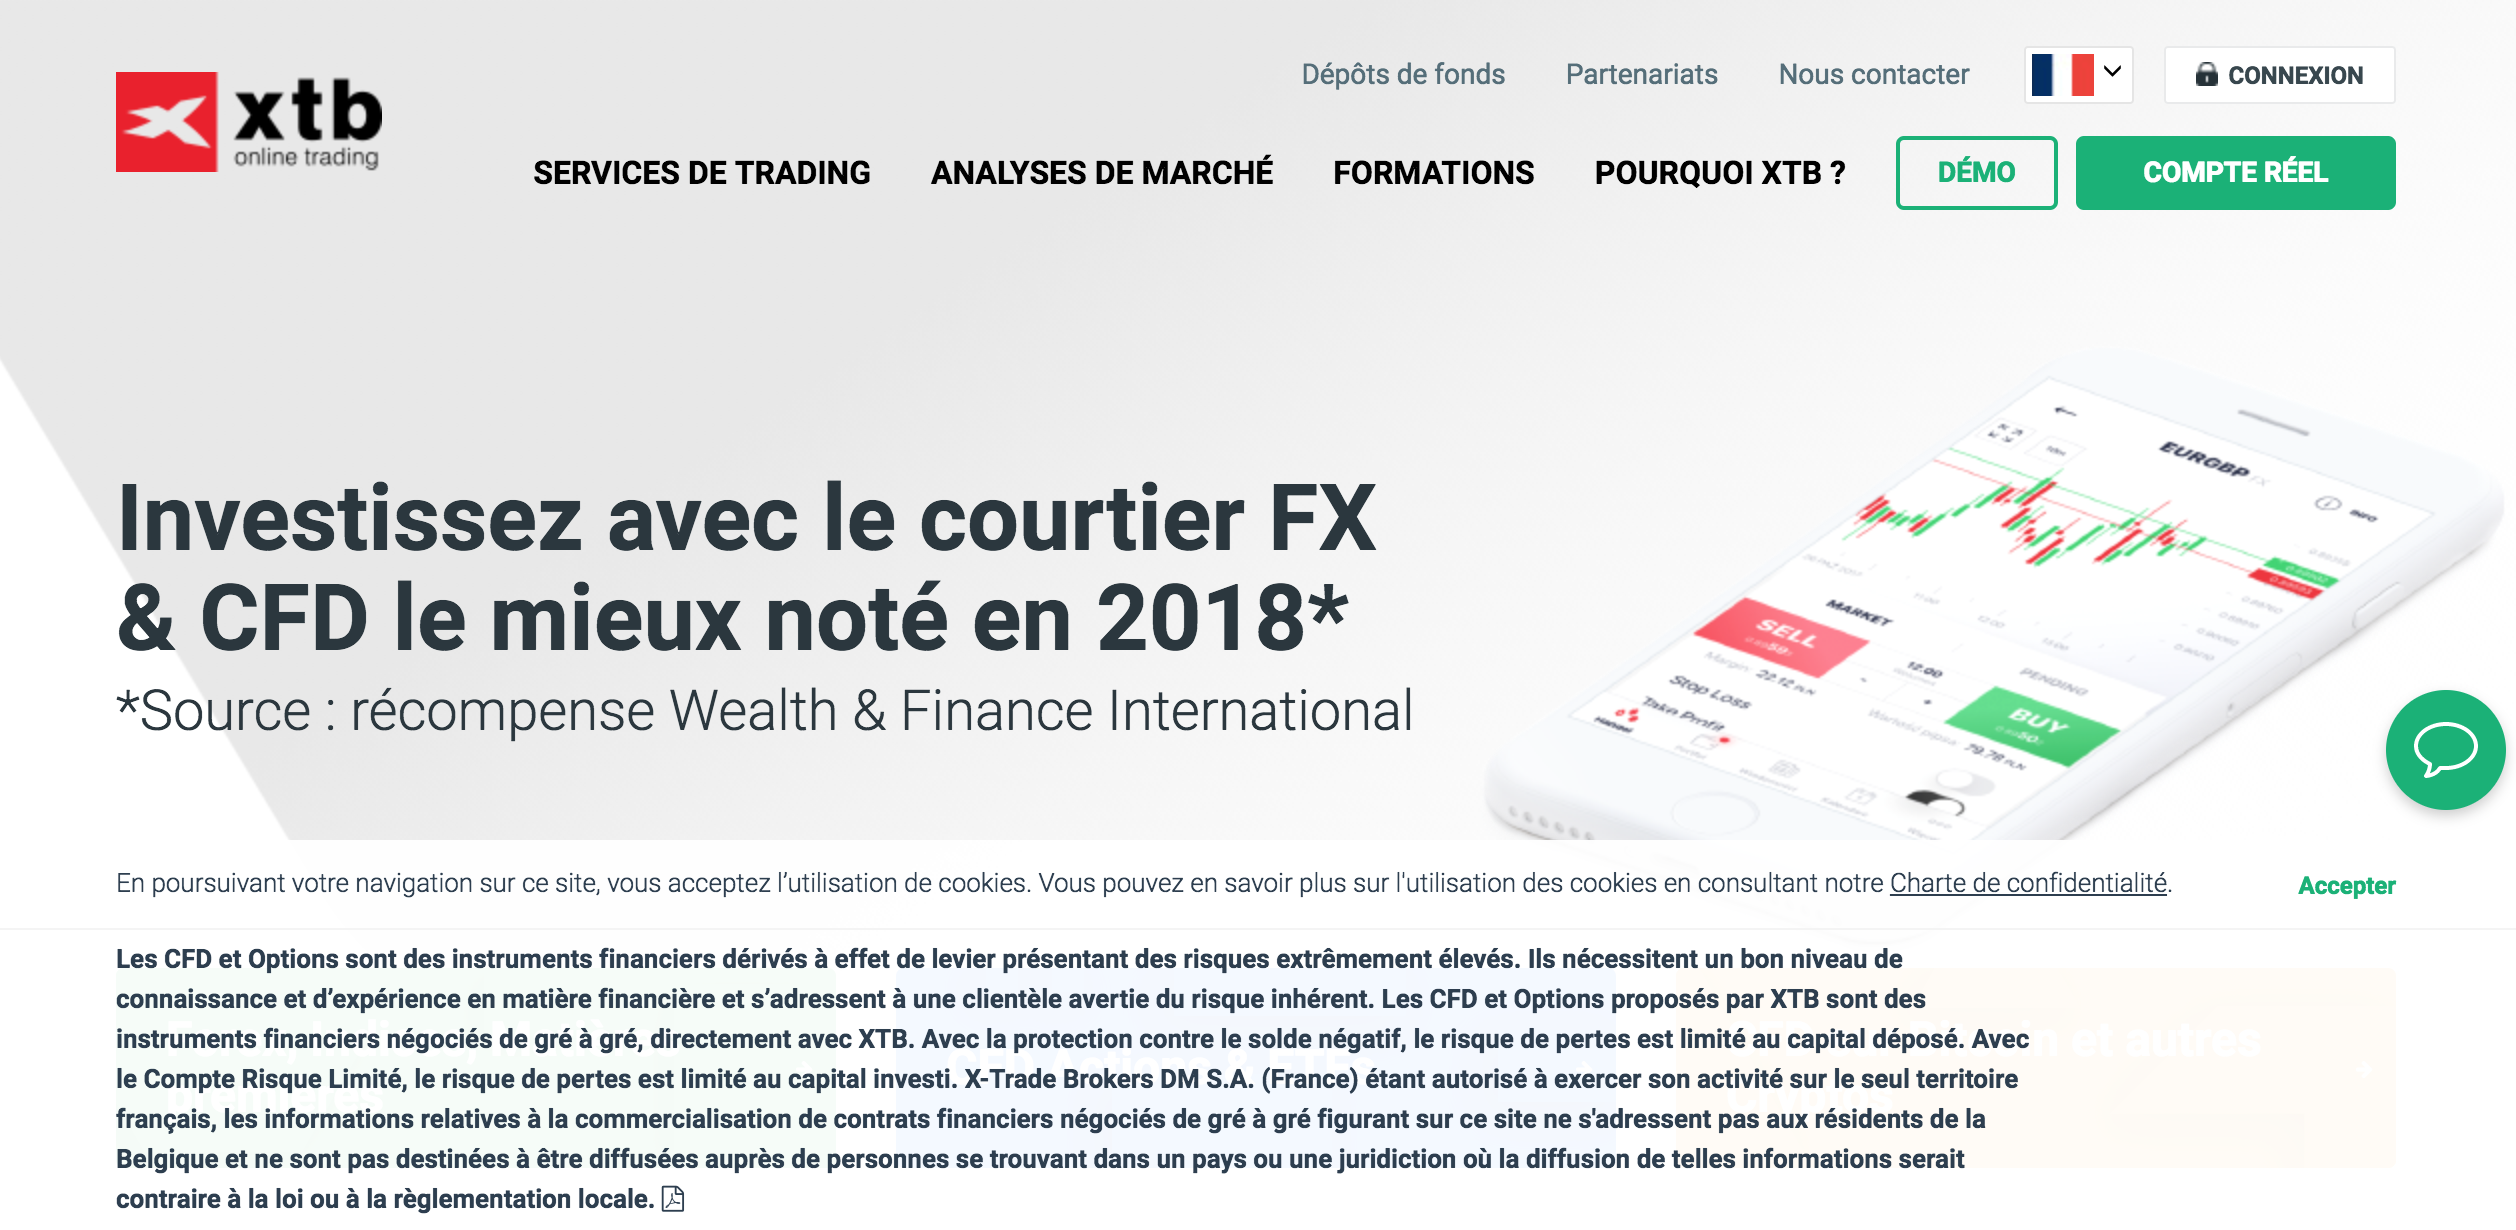 q options binaires opton comment trader 24 options ouvrir un compte démo